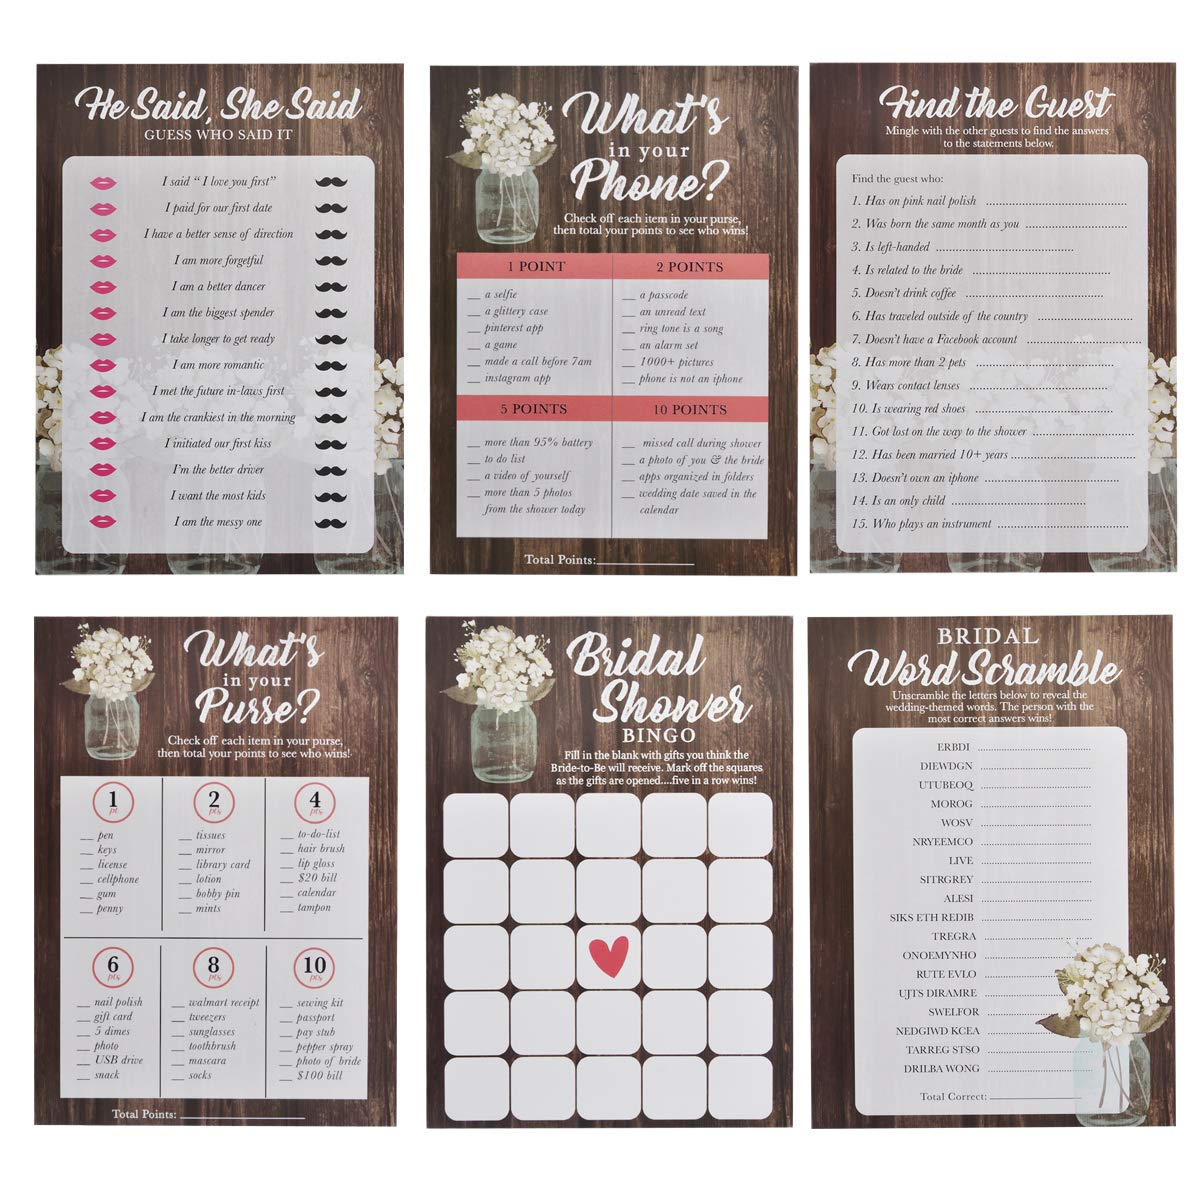 Mason Jar Bridal Shower Games, 6 Design | 30 Sheets Each | Wedding Advice & Games Cards for Guests Include Bridal Shower Bingo- He said, She, Said Bridal Shower Games for Guests Also Suit Anniversary by Brightone